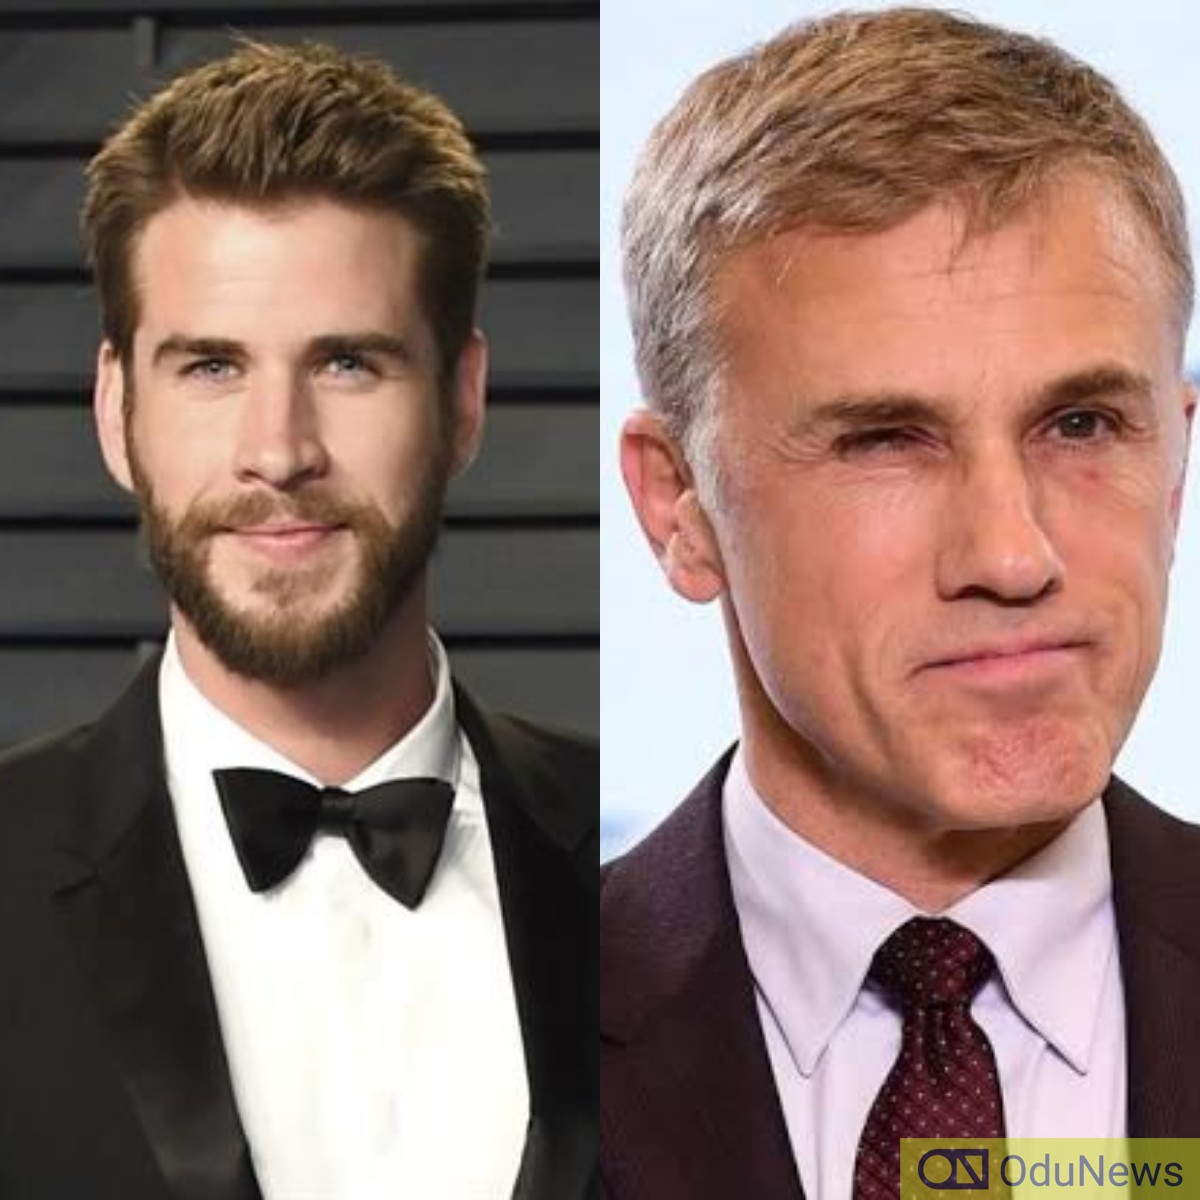 Liam Hemsworth and Christoph Waltz will play men who find themselves on opposite sides